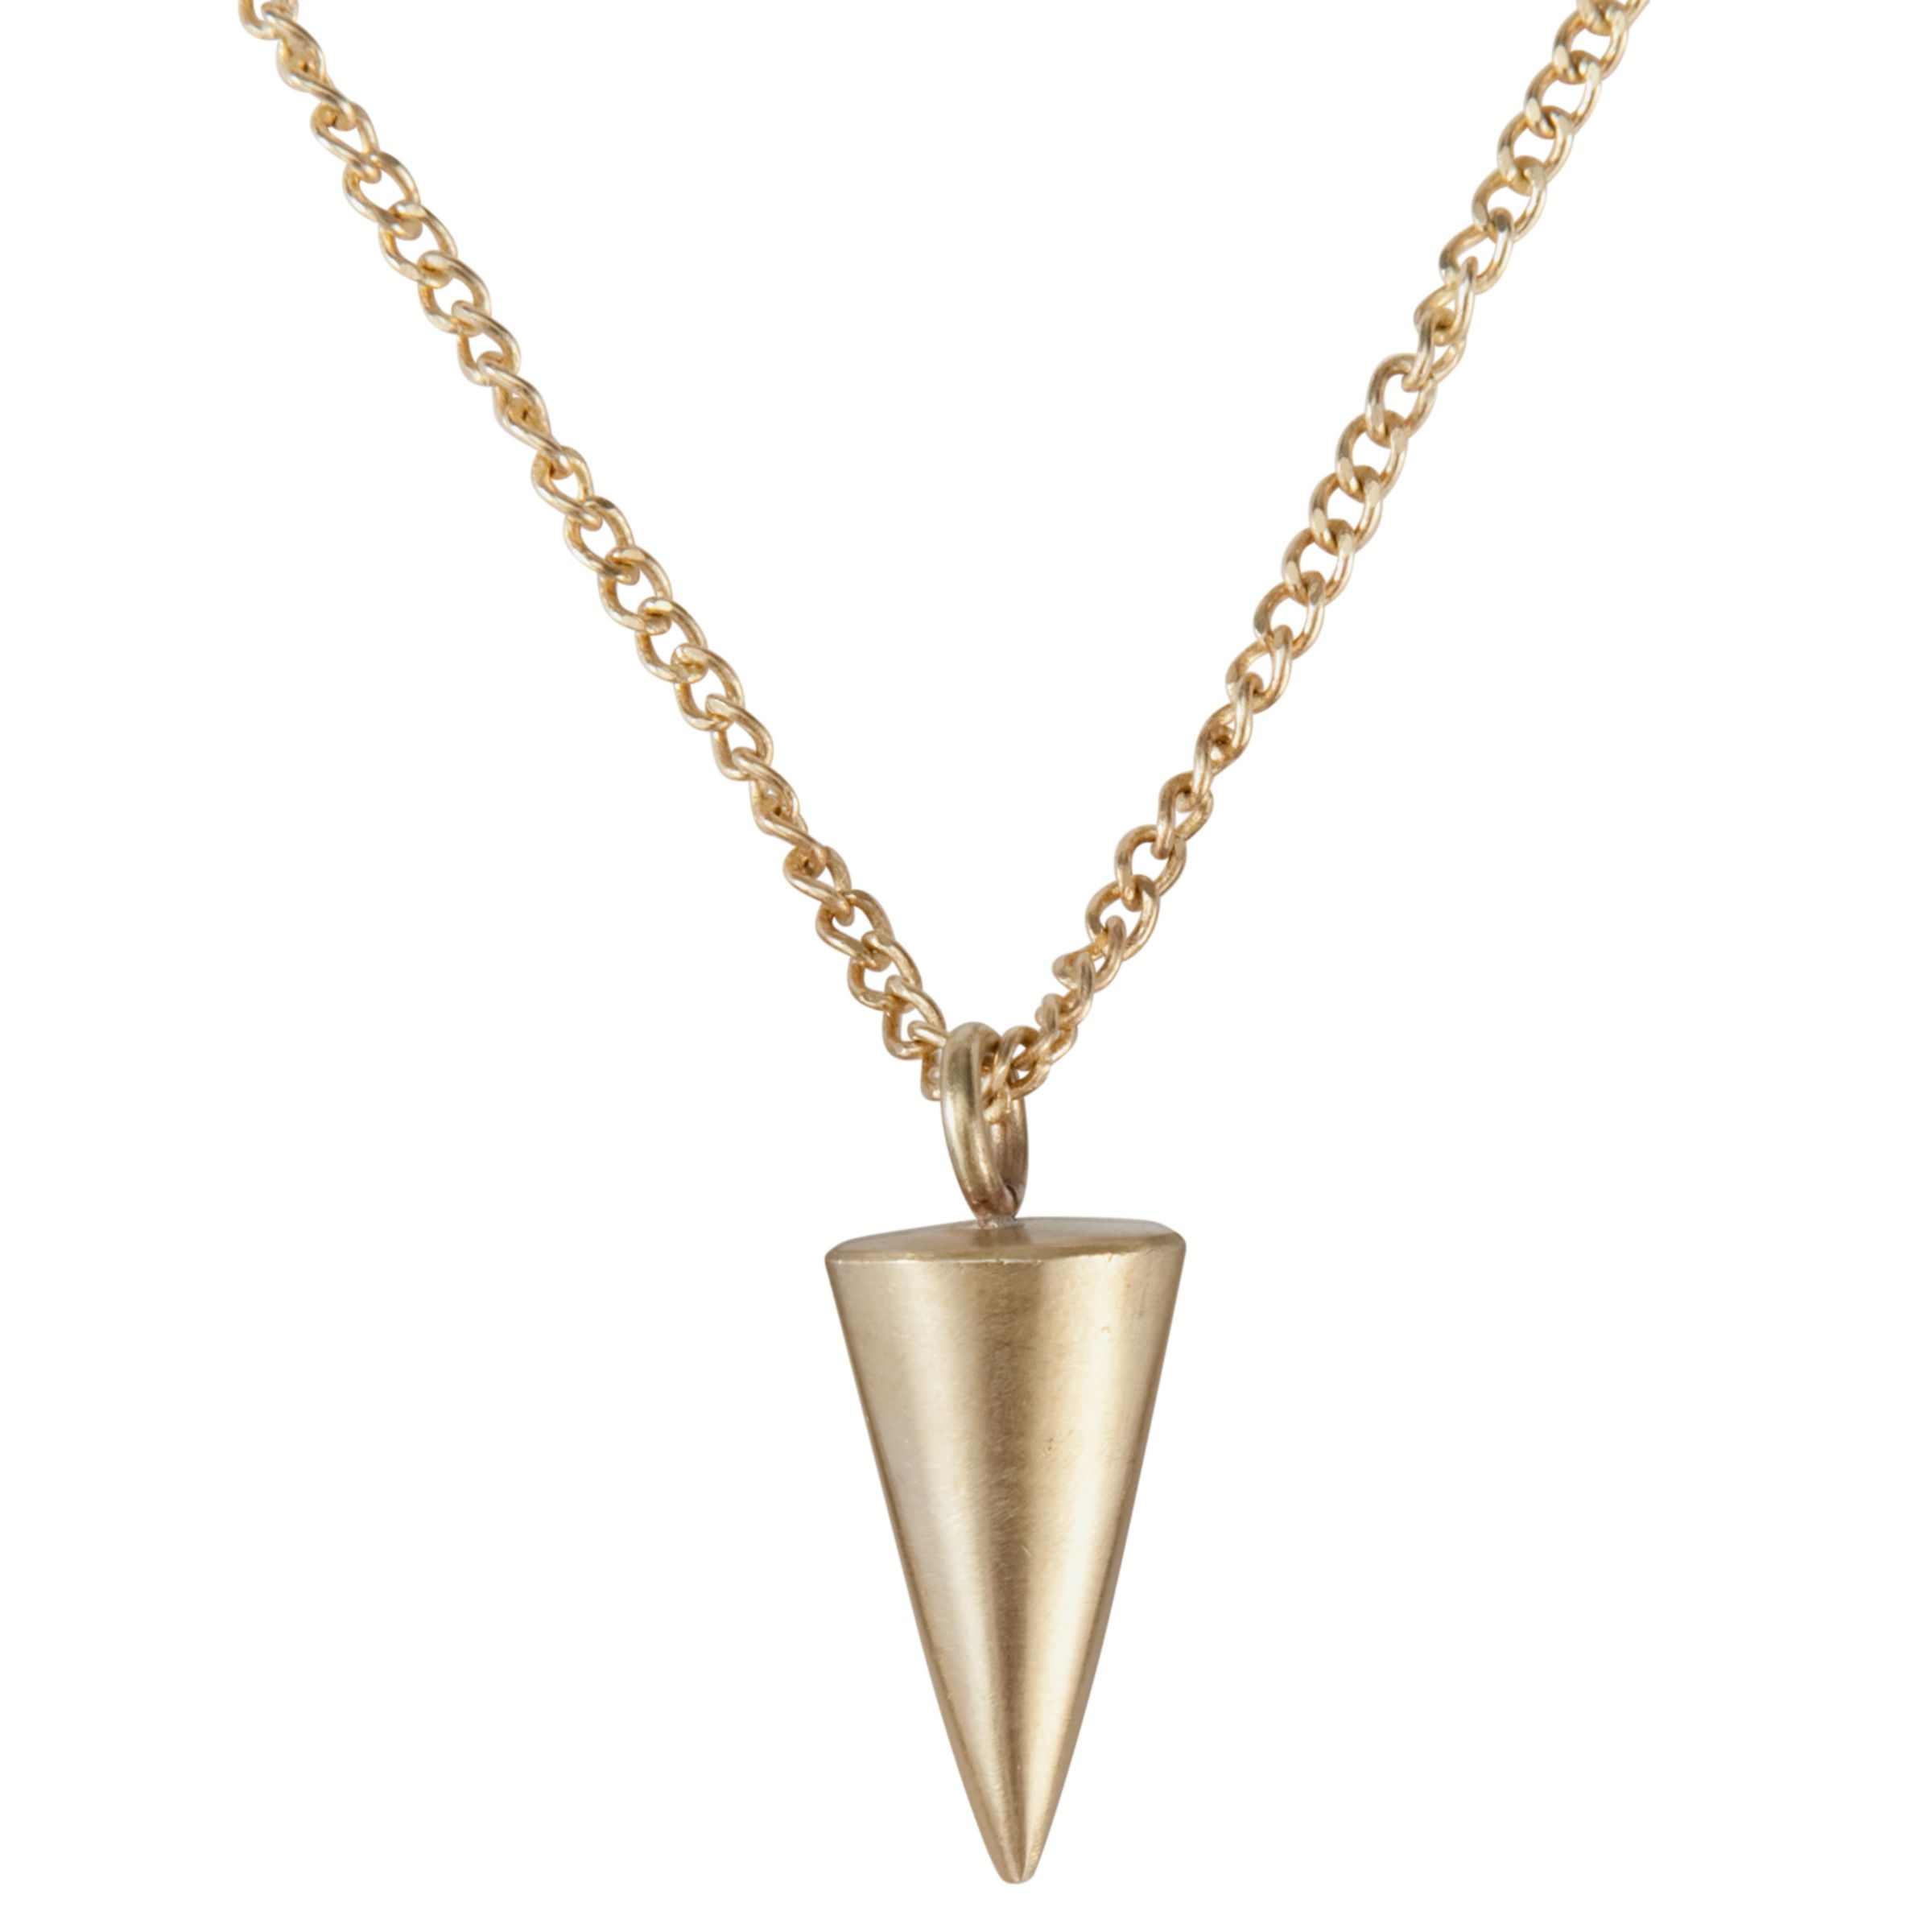 Made Small Brass Cone Pendant Necklace